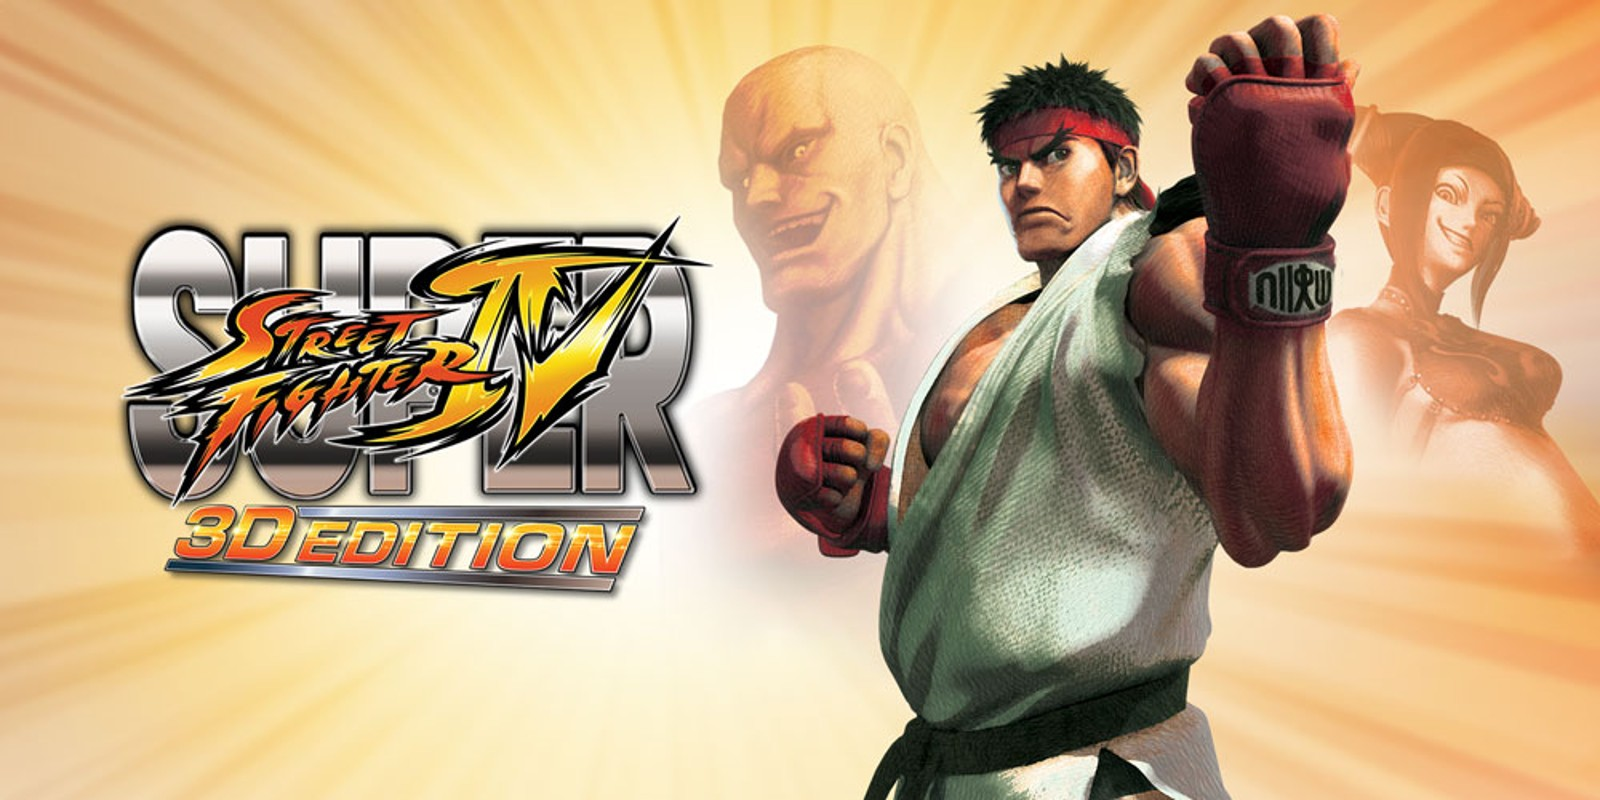 Super Street Fighter™ IV 3D Edition